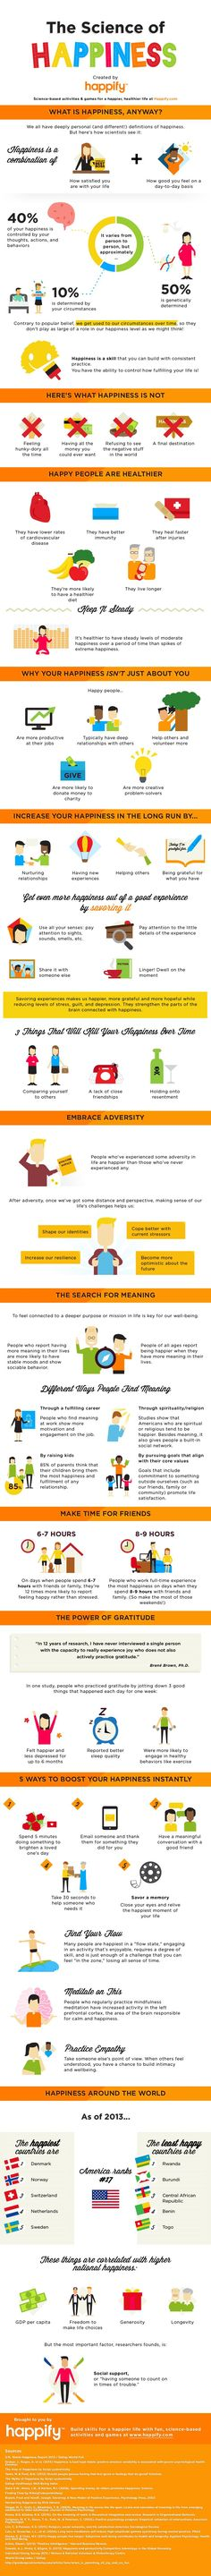 Secret to Happiness Infographic